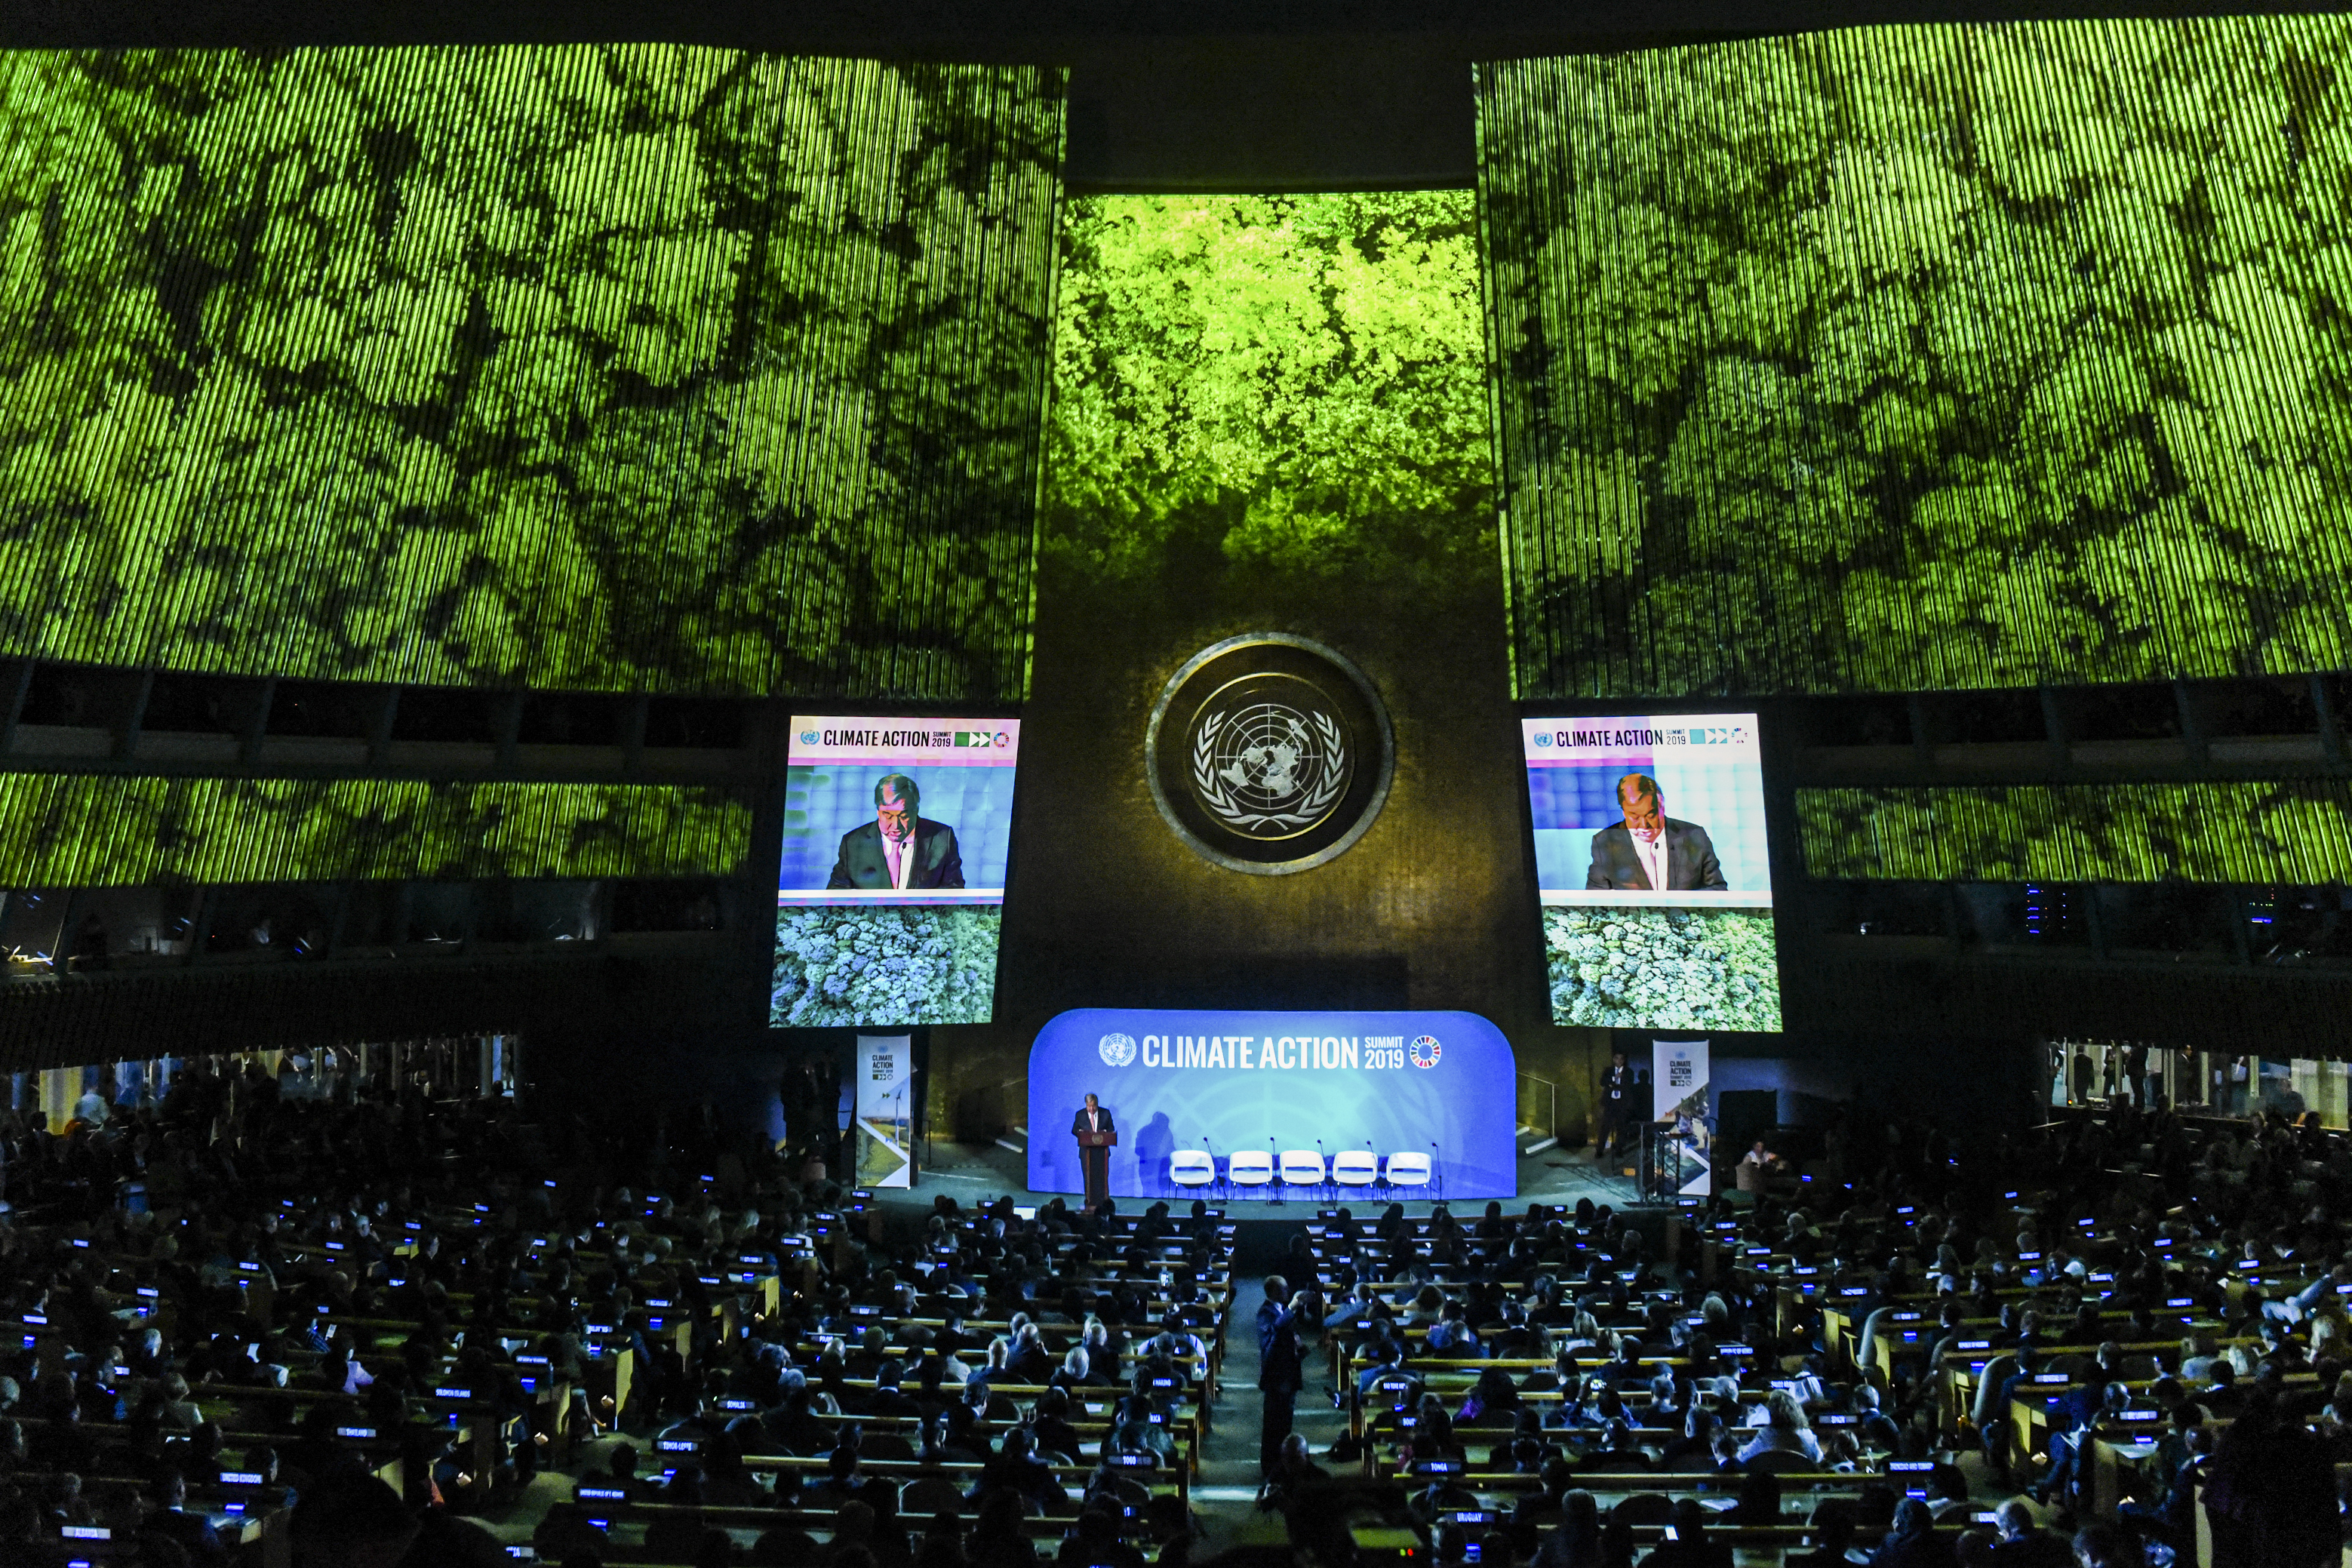 Inside the United Nations Climate Action Summit, where the audience watches two large video monitors flanking UN Secretary-General António Guterres onstage.